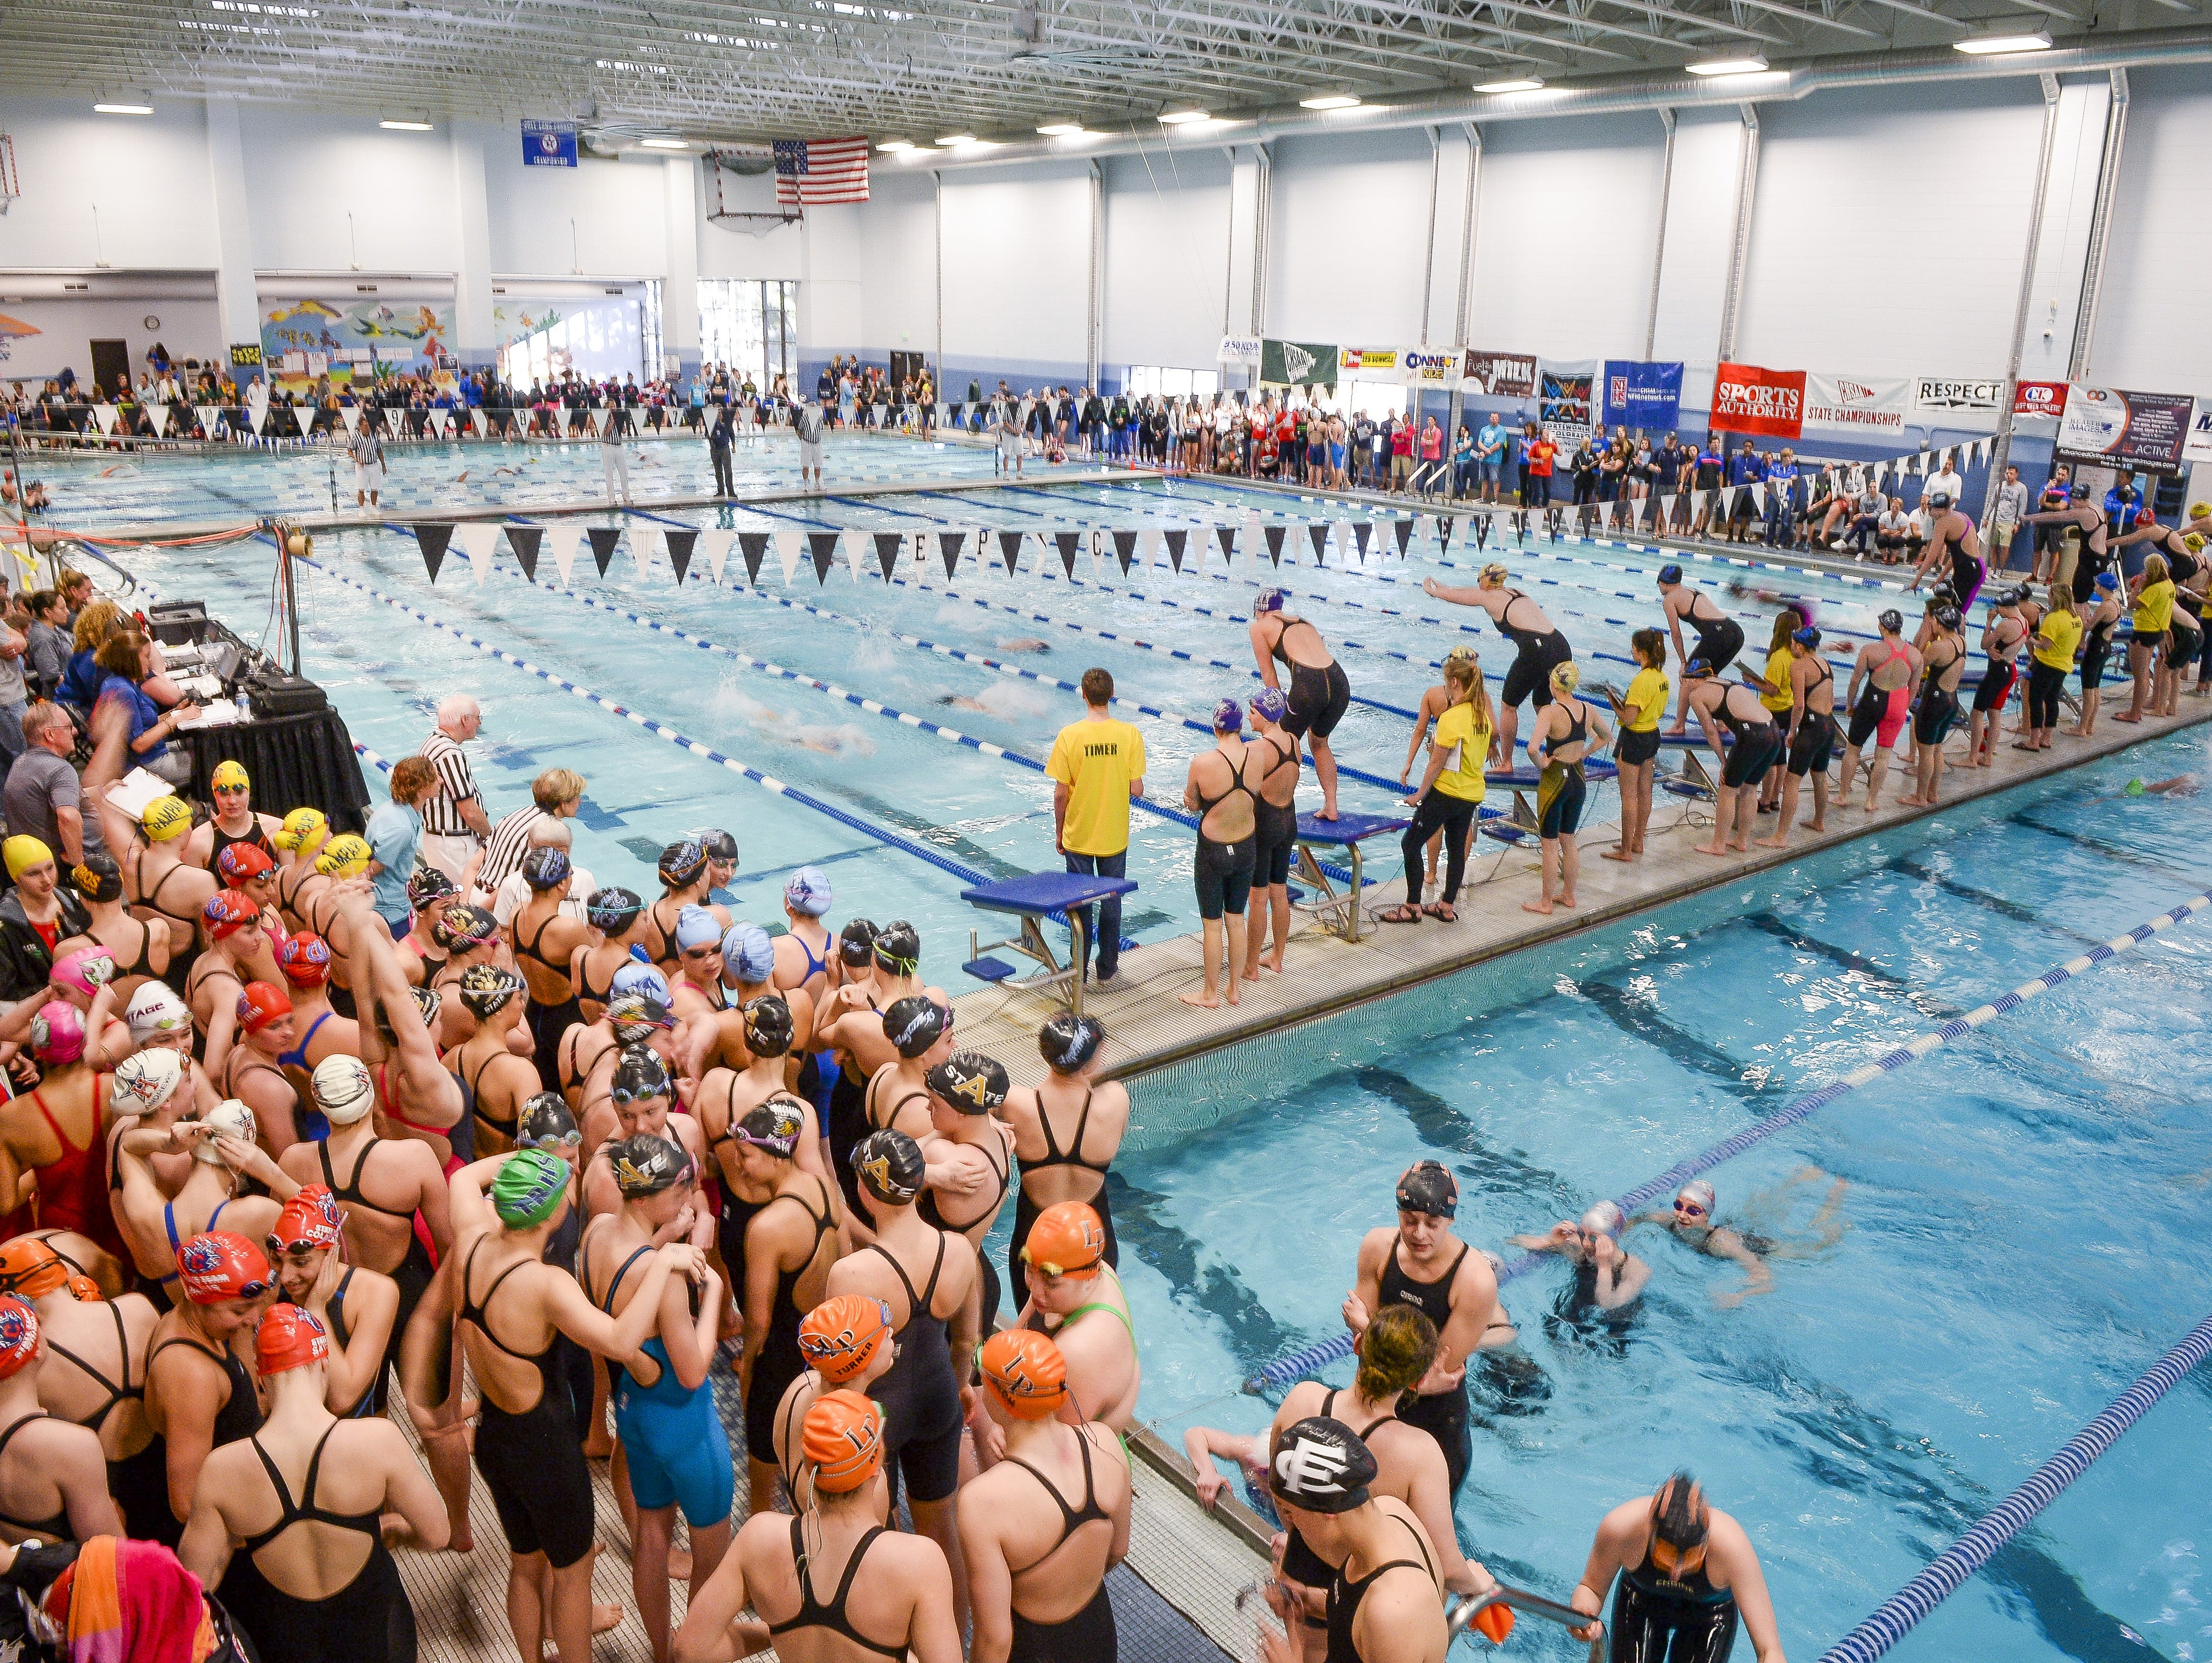 Edora Pool Ice Center is home to the Class 5A state girls swim meet. The 2015 state meet is pictured. EPIC is one of two public pools in Fort Collins that combine to host four high school teams, two clubs as well as public swimmers and City of Fort Collins recreation activities.